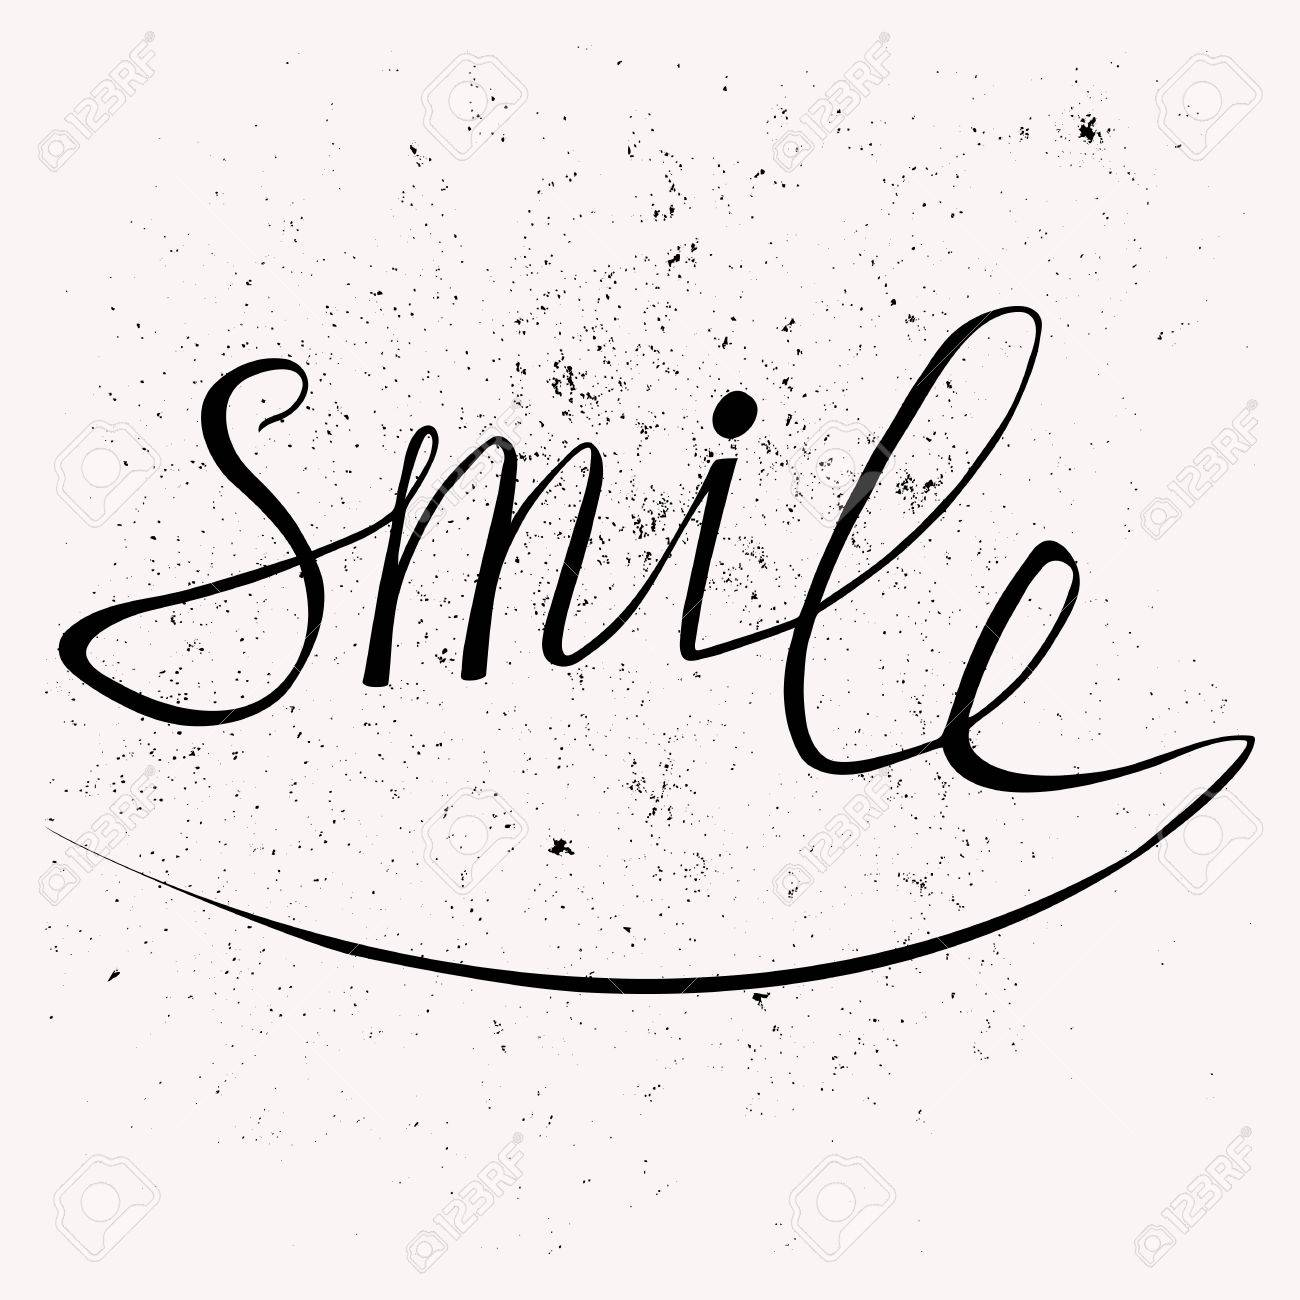 Poster design drawing - Hand Drawn Typography Poster Stylish Typographic Poster Design With Inscription Smile Used For Greeting